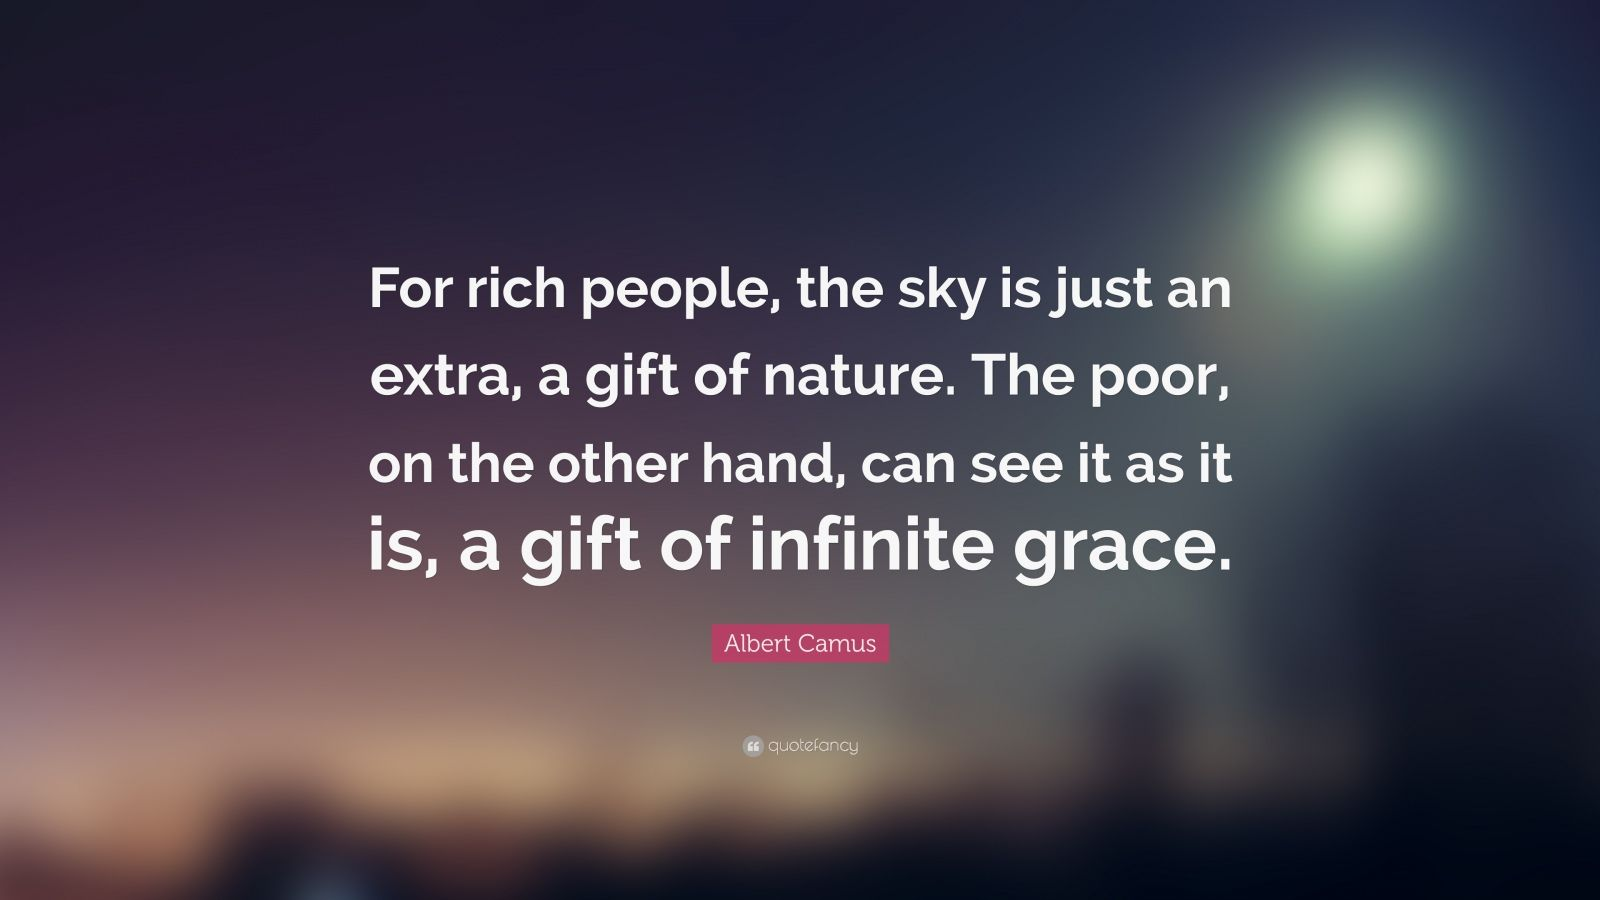 """Albert Camus Quote: """"For rich people, the sky is just an extra, a gift of nature. The poor, on the other hand, can see it as it is, a gift of infinite grace."""""""